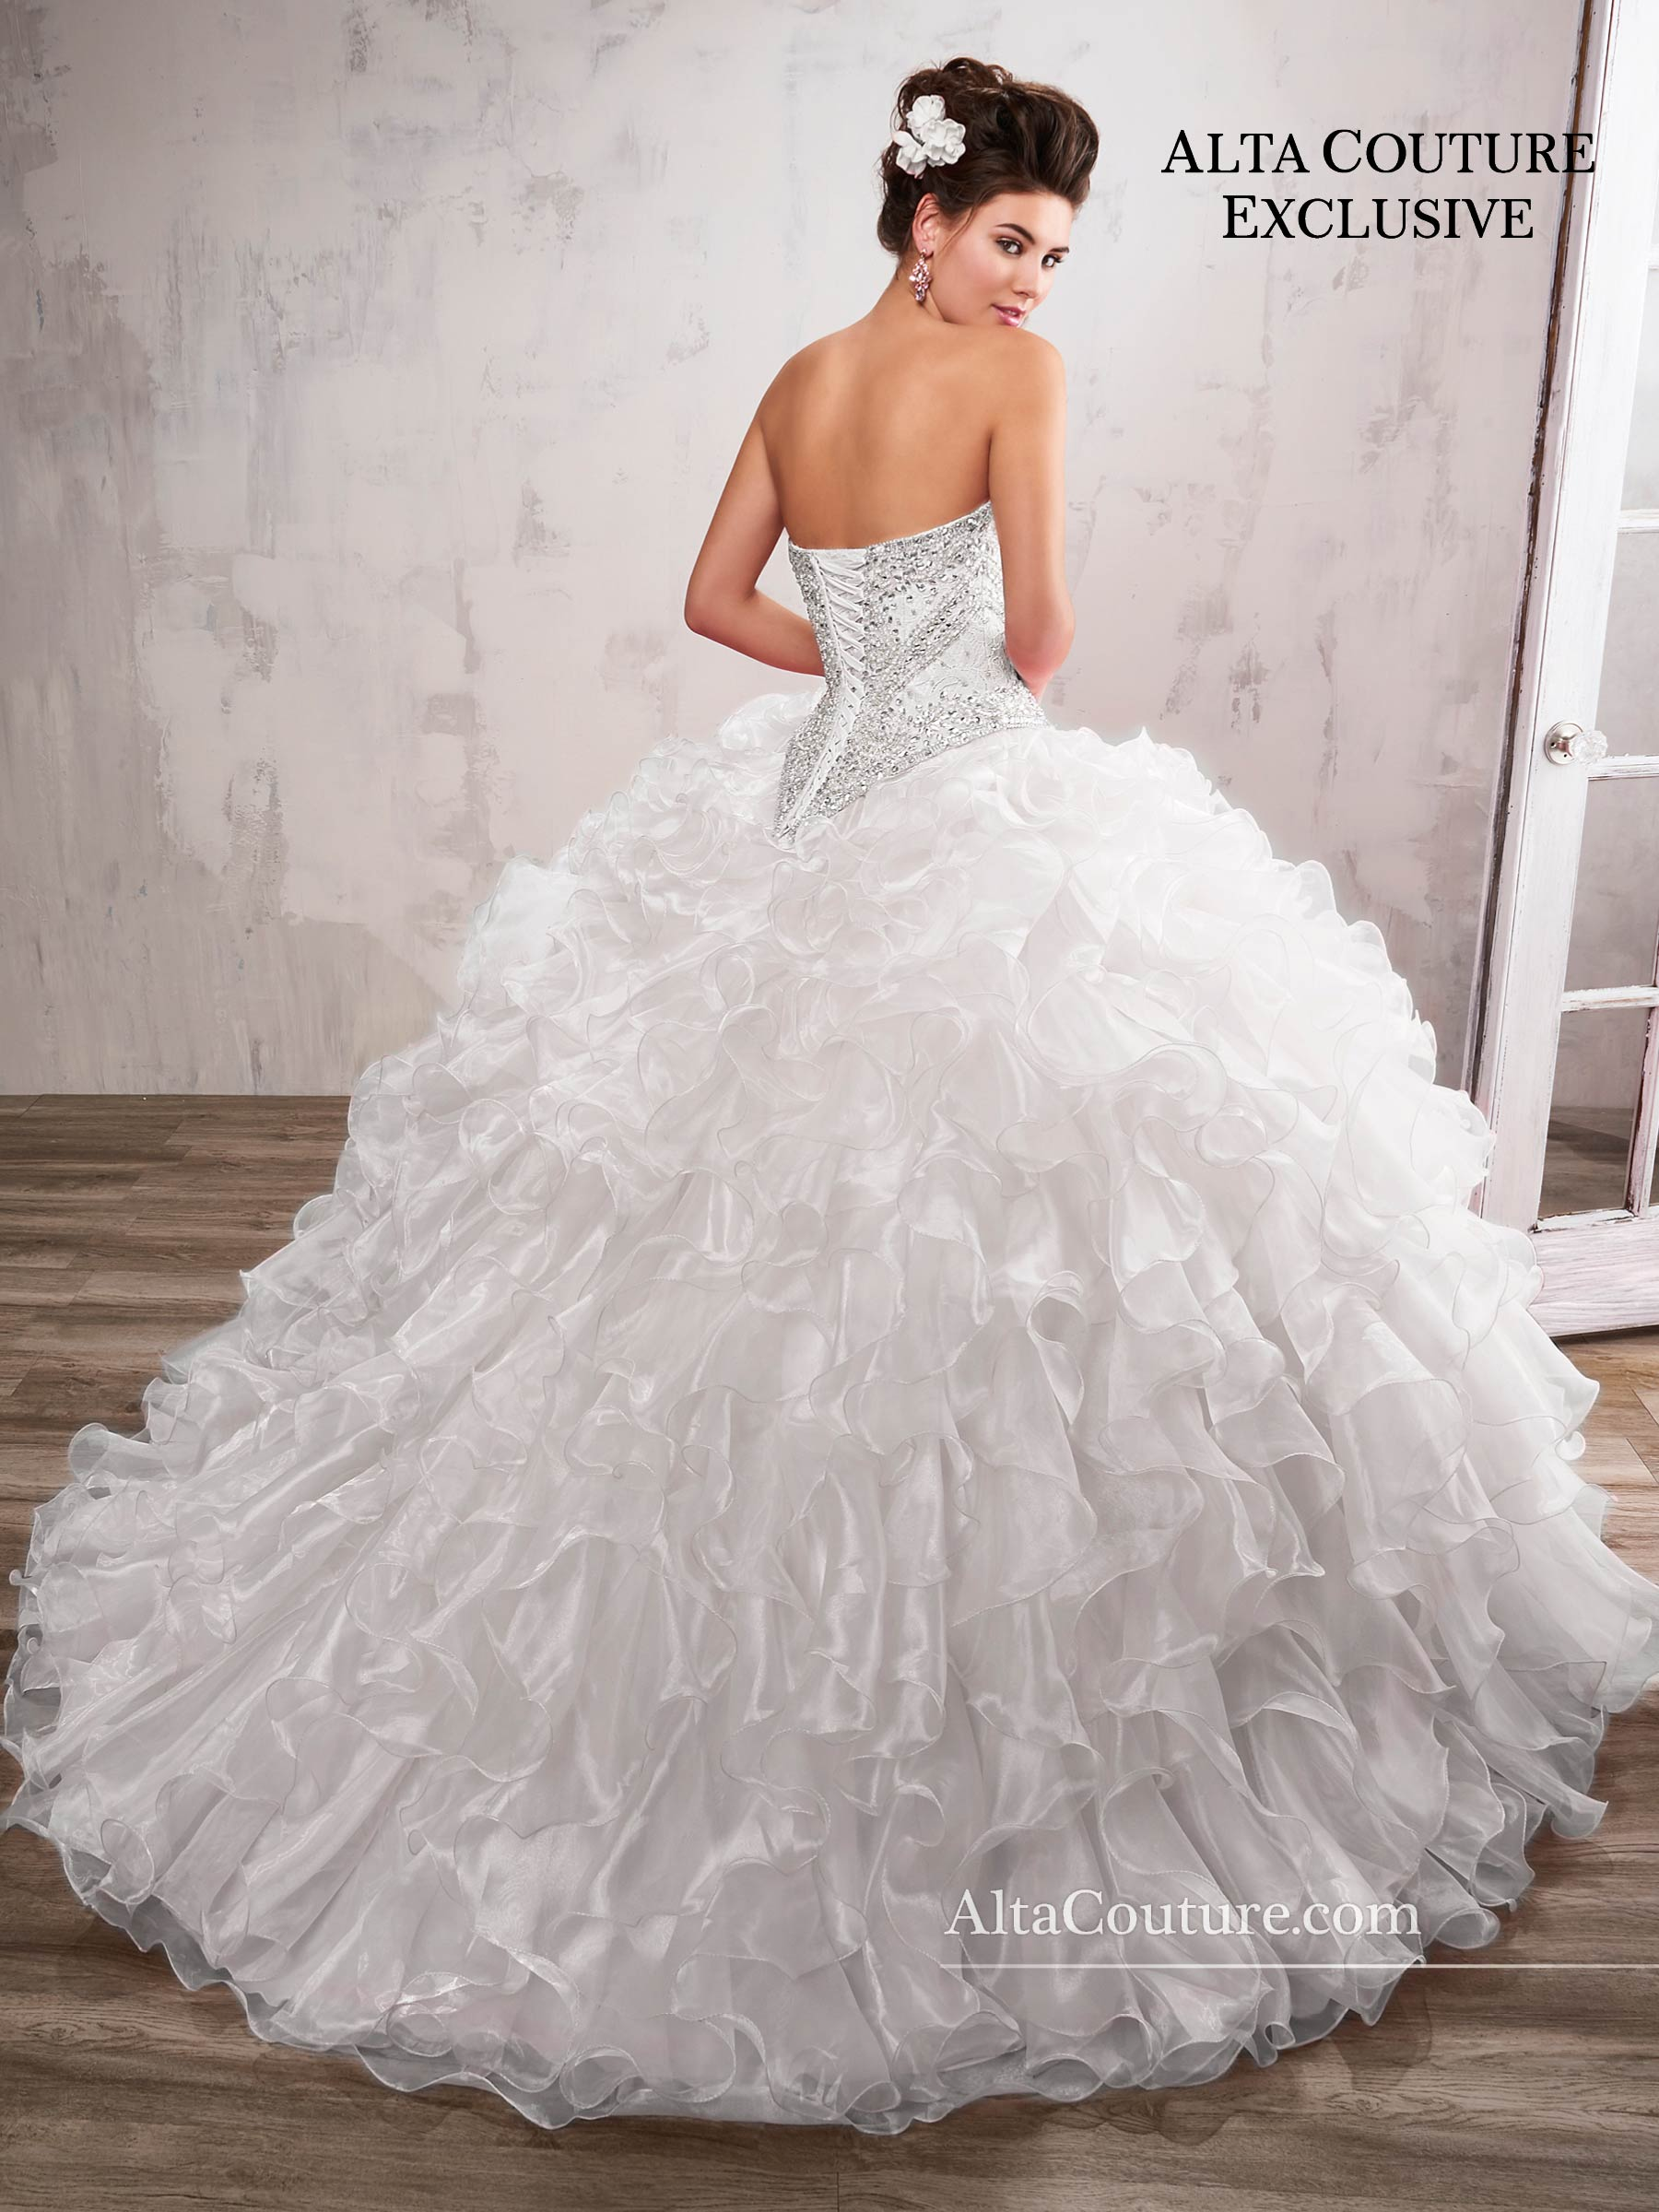 Quinceanera Couture Dresses | Alta Couture | Style - 4T194